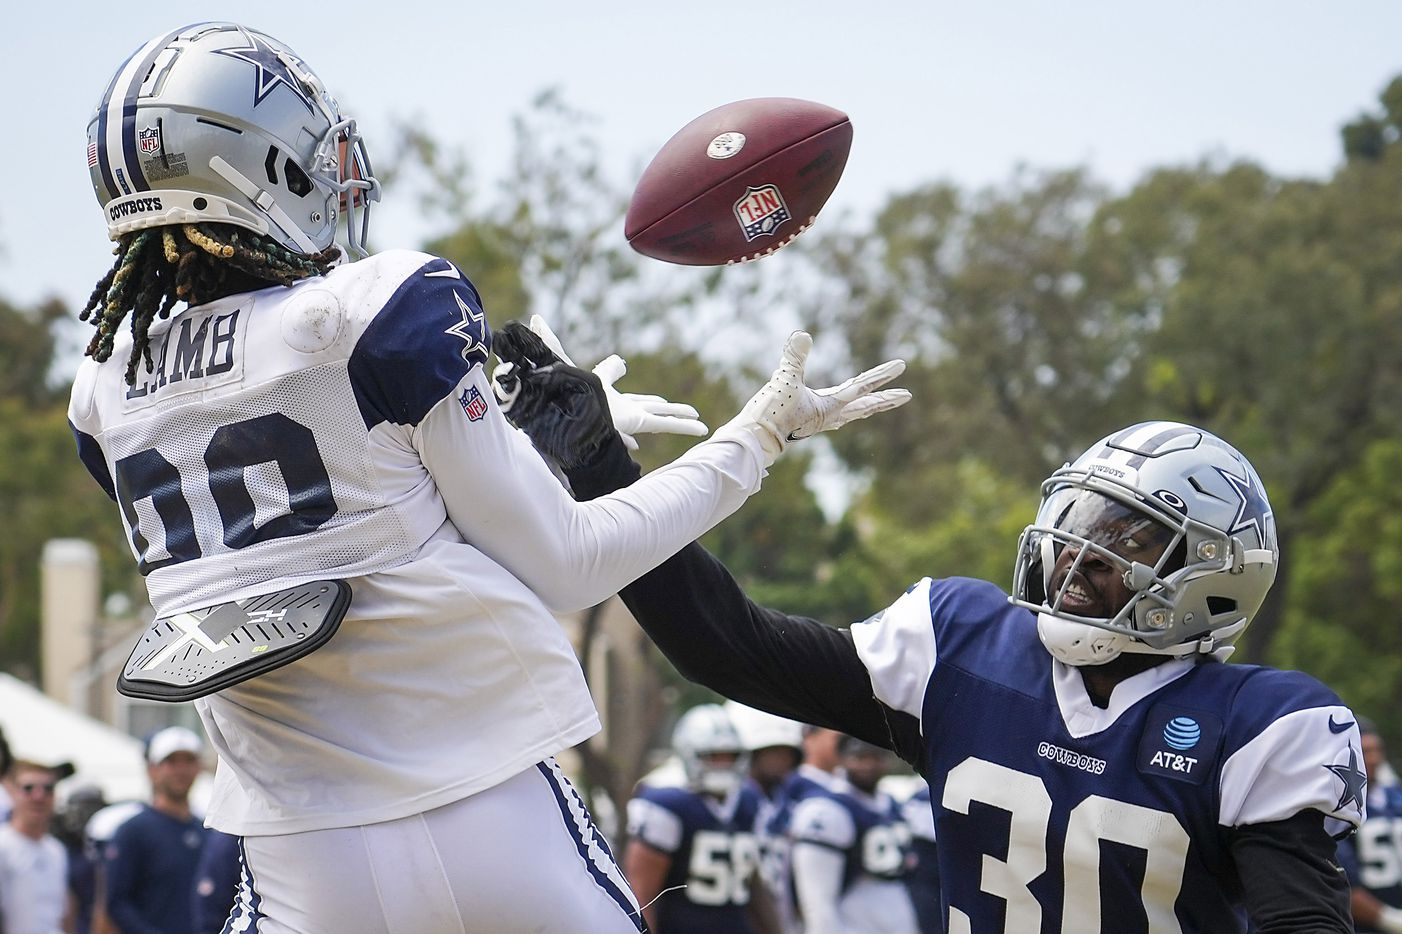 Dallas Cowboys wide receiver CeeDee Lamb (88) catches a touchdown  pass as cornerback Anthony Brown (30) defends during a practice at training camp on Wednesday, Aug. 11, 2021, in Oxnard, Calif.